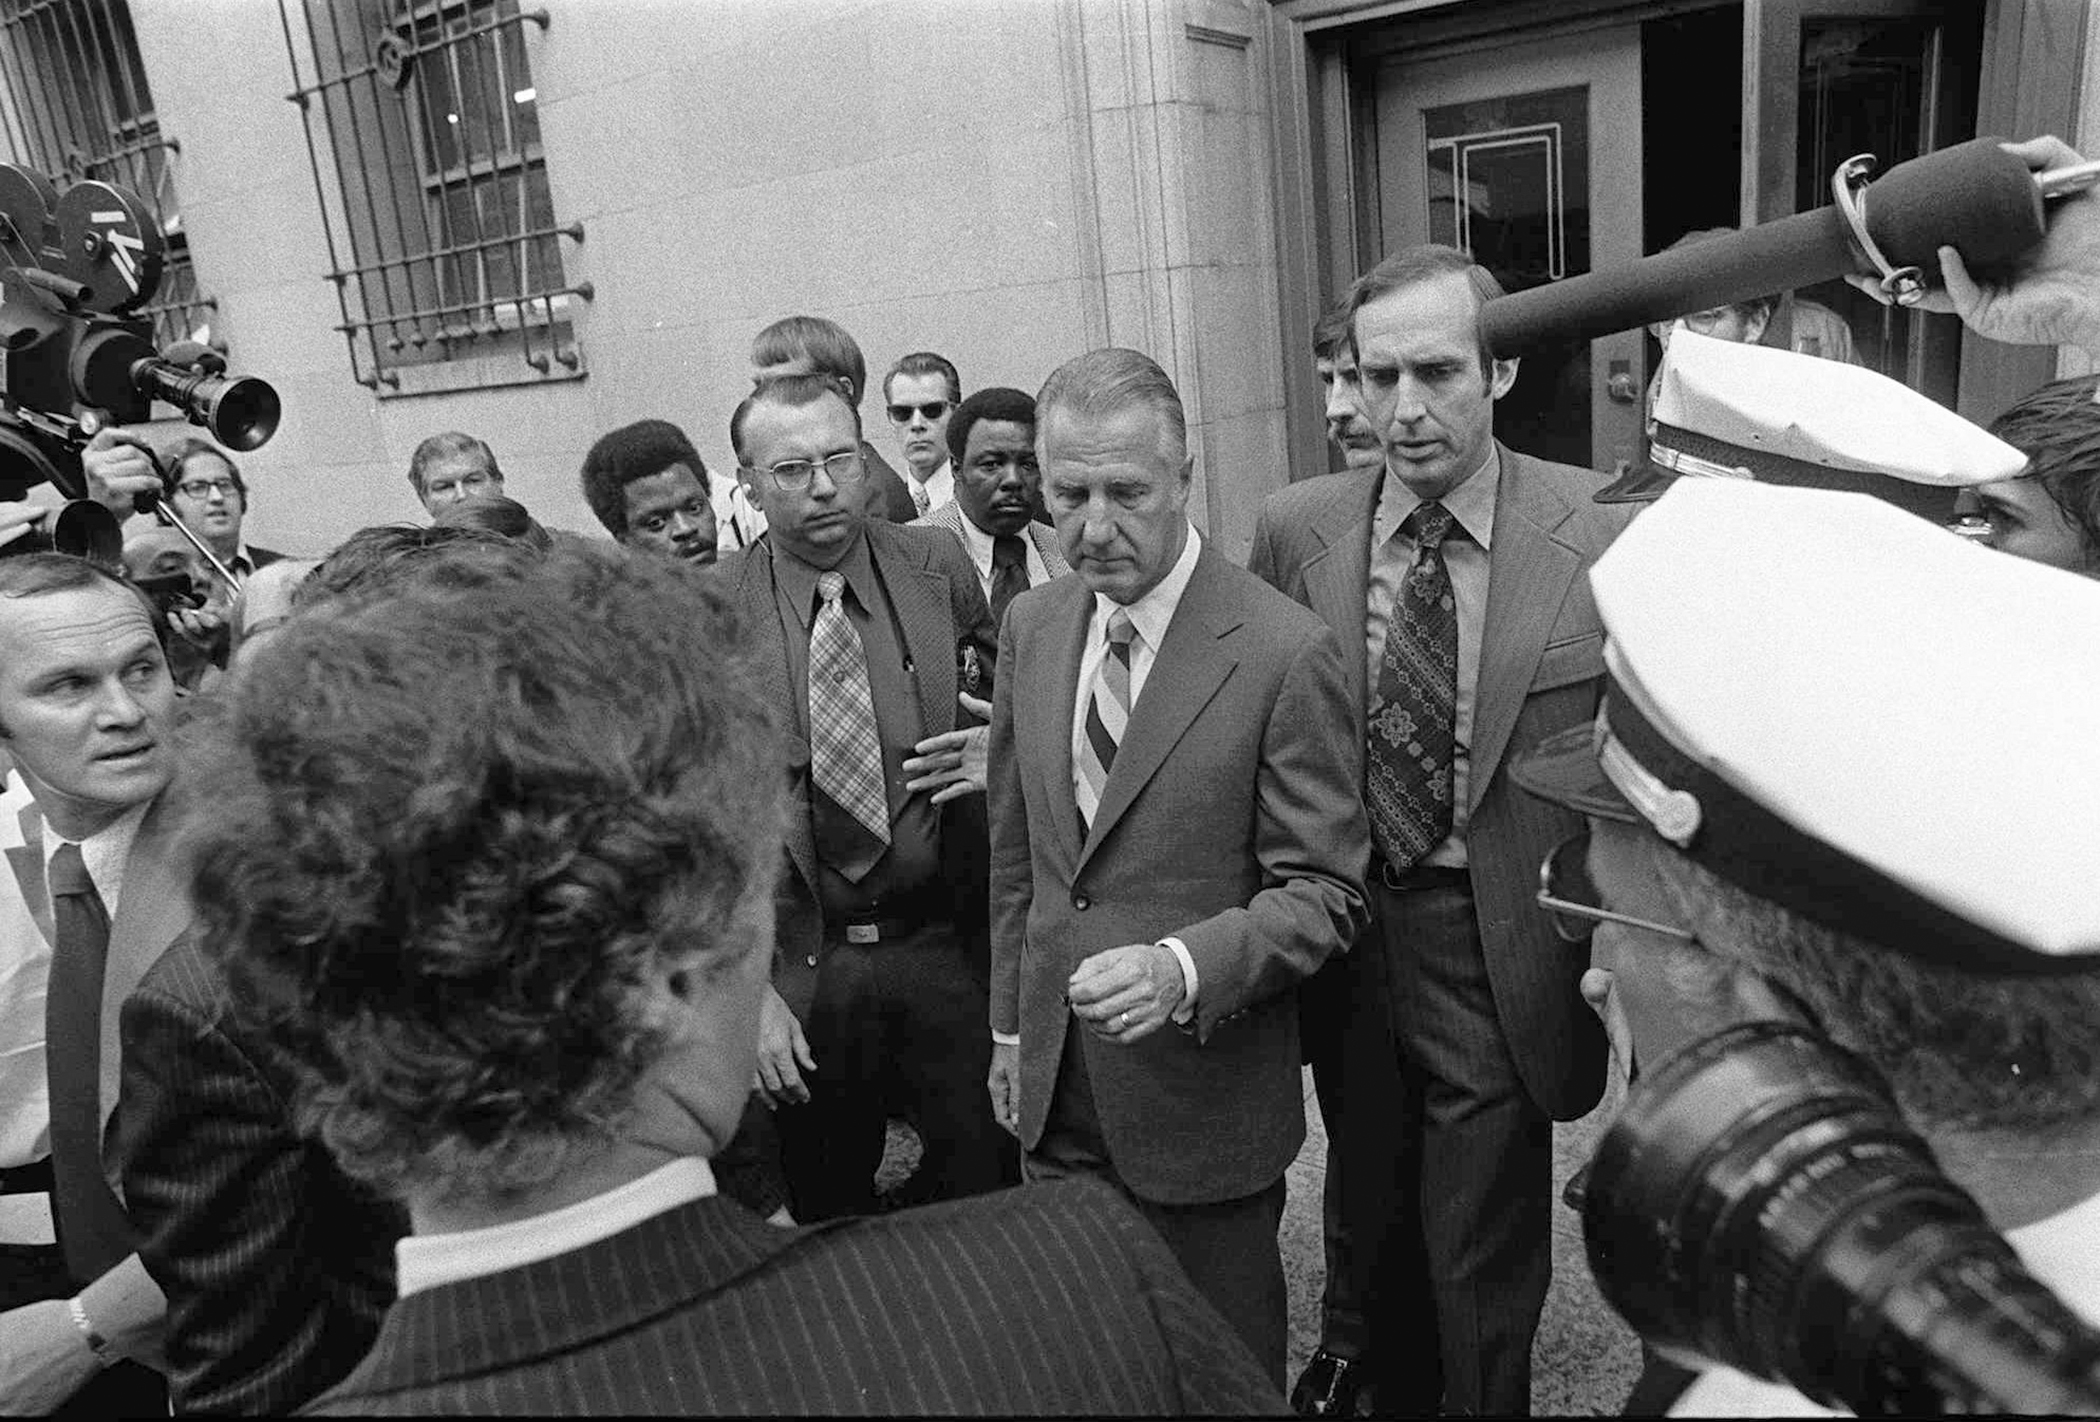 Spiro T. Agnew, center, is shown leaving court in Baltimore Oct. 10, 1973 after pleading no contest to a charge of income tax evasion.  Agnew resigned from the Vice Presidency shortly after.